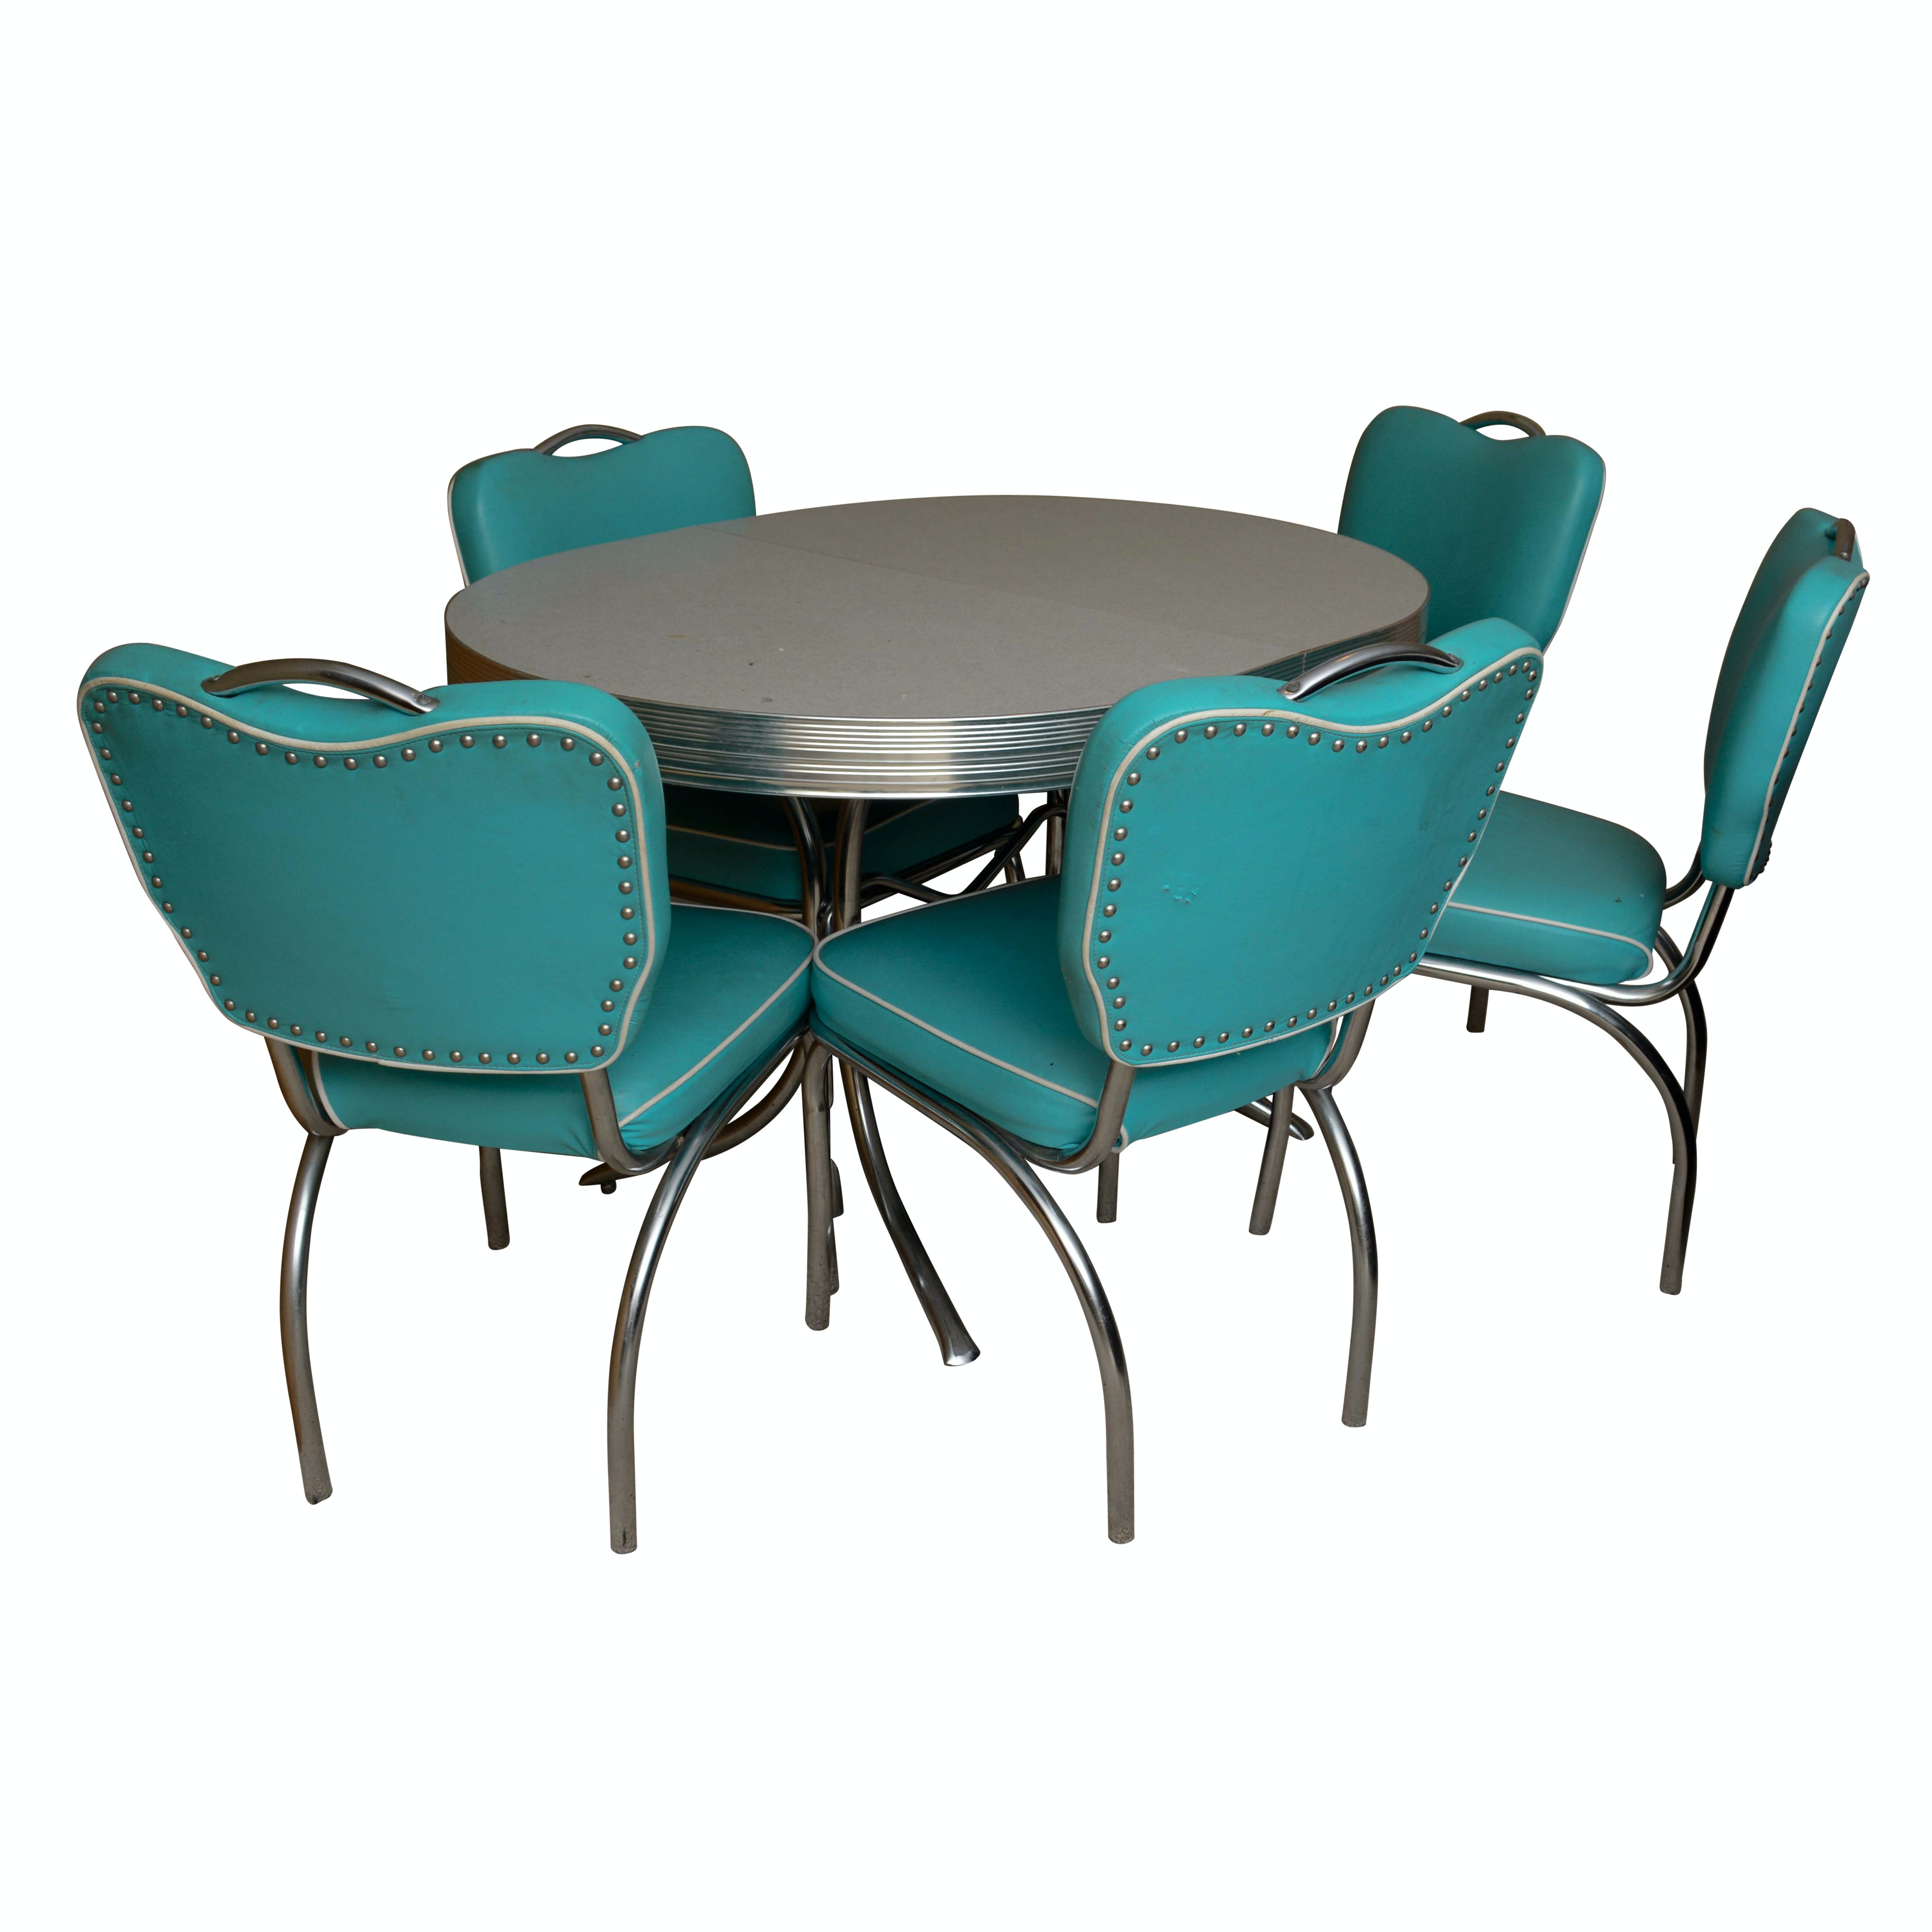 Mid-Century Diner Style Bent Chrome Table and Chairs Set